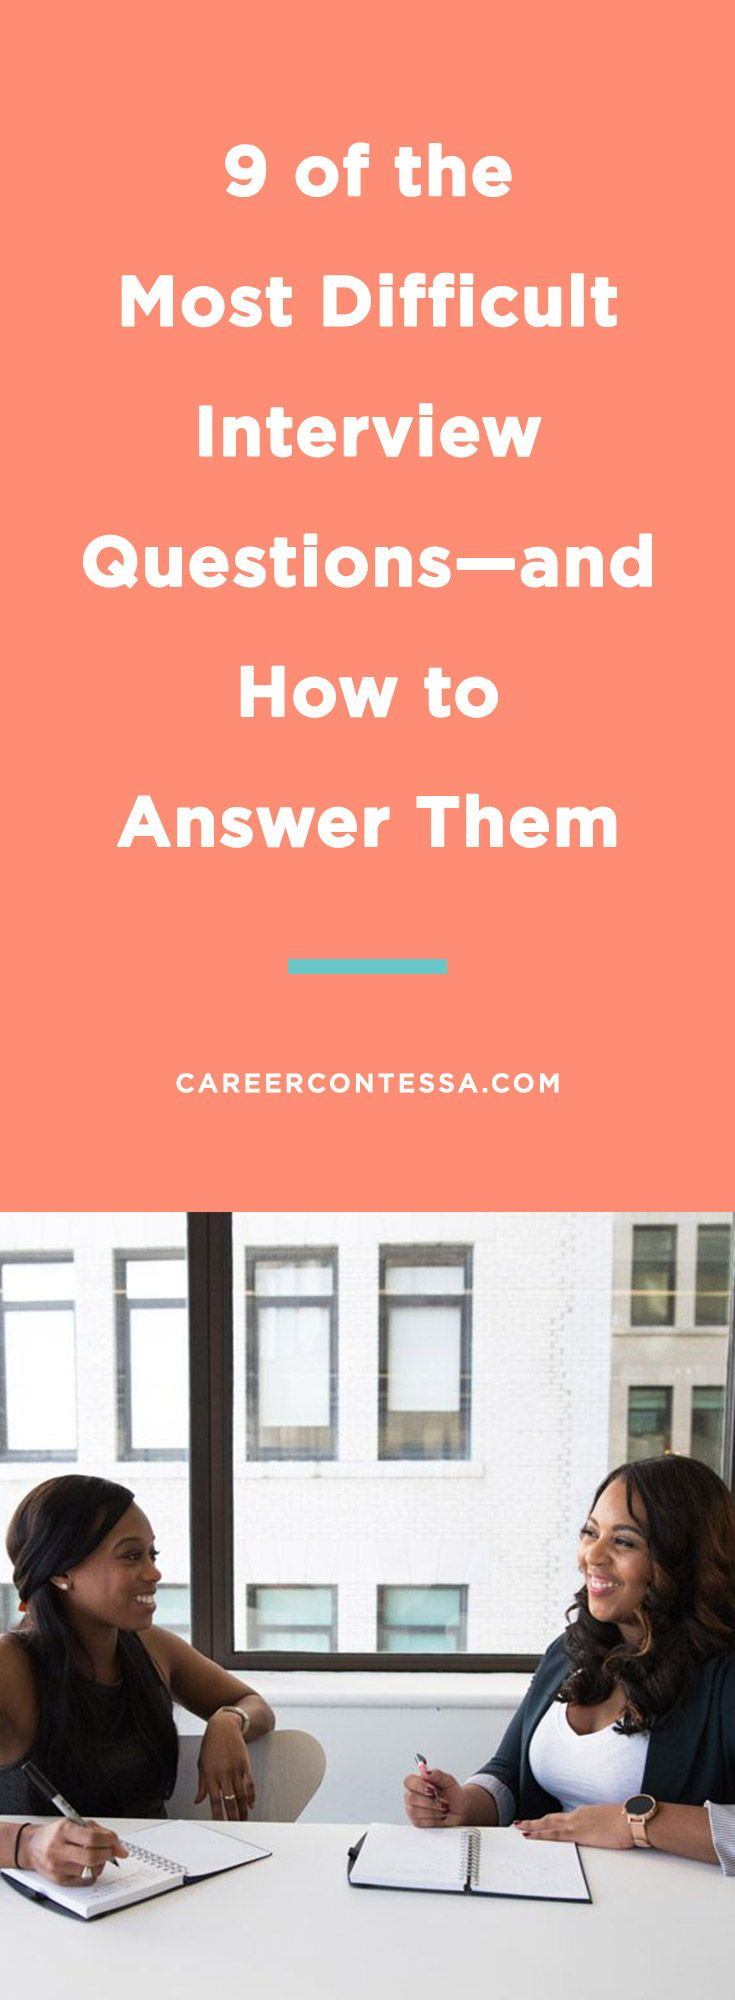 9 of the Most Difficult Interview Questions—and How to Answer Them - Difficult interview questions, Interview questions, Management interview questions, Interview advice, Interview skills, Job interview advice - What's your absolute least favorite job interview question